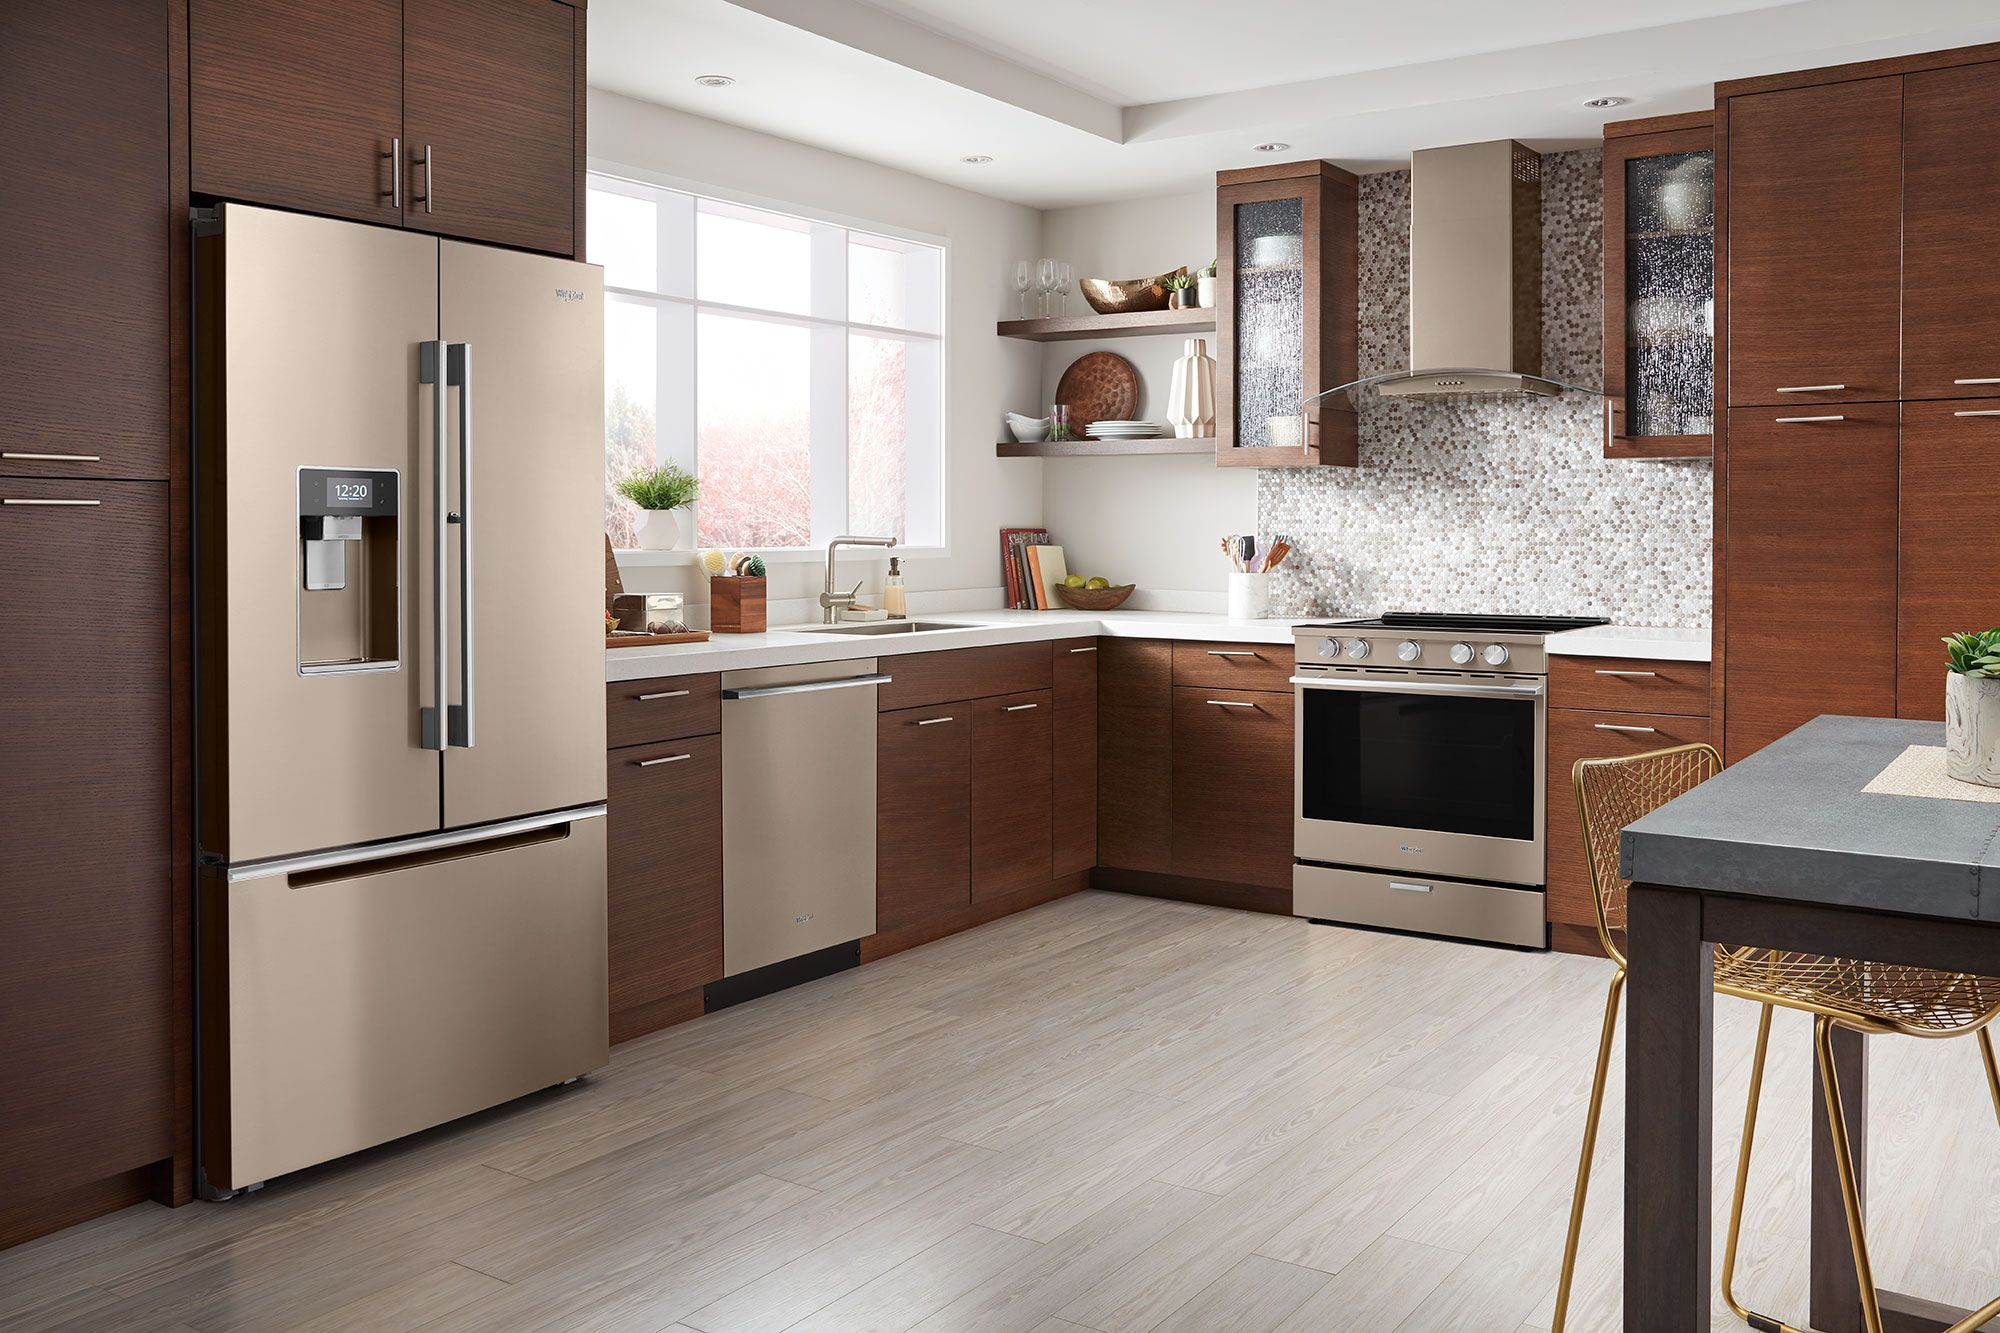 heard of sunset bronze whirlpool brings a new hue to your kitchen with this fingerprint on kitchen remodel ideas id=91090